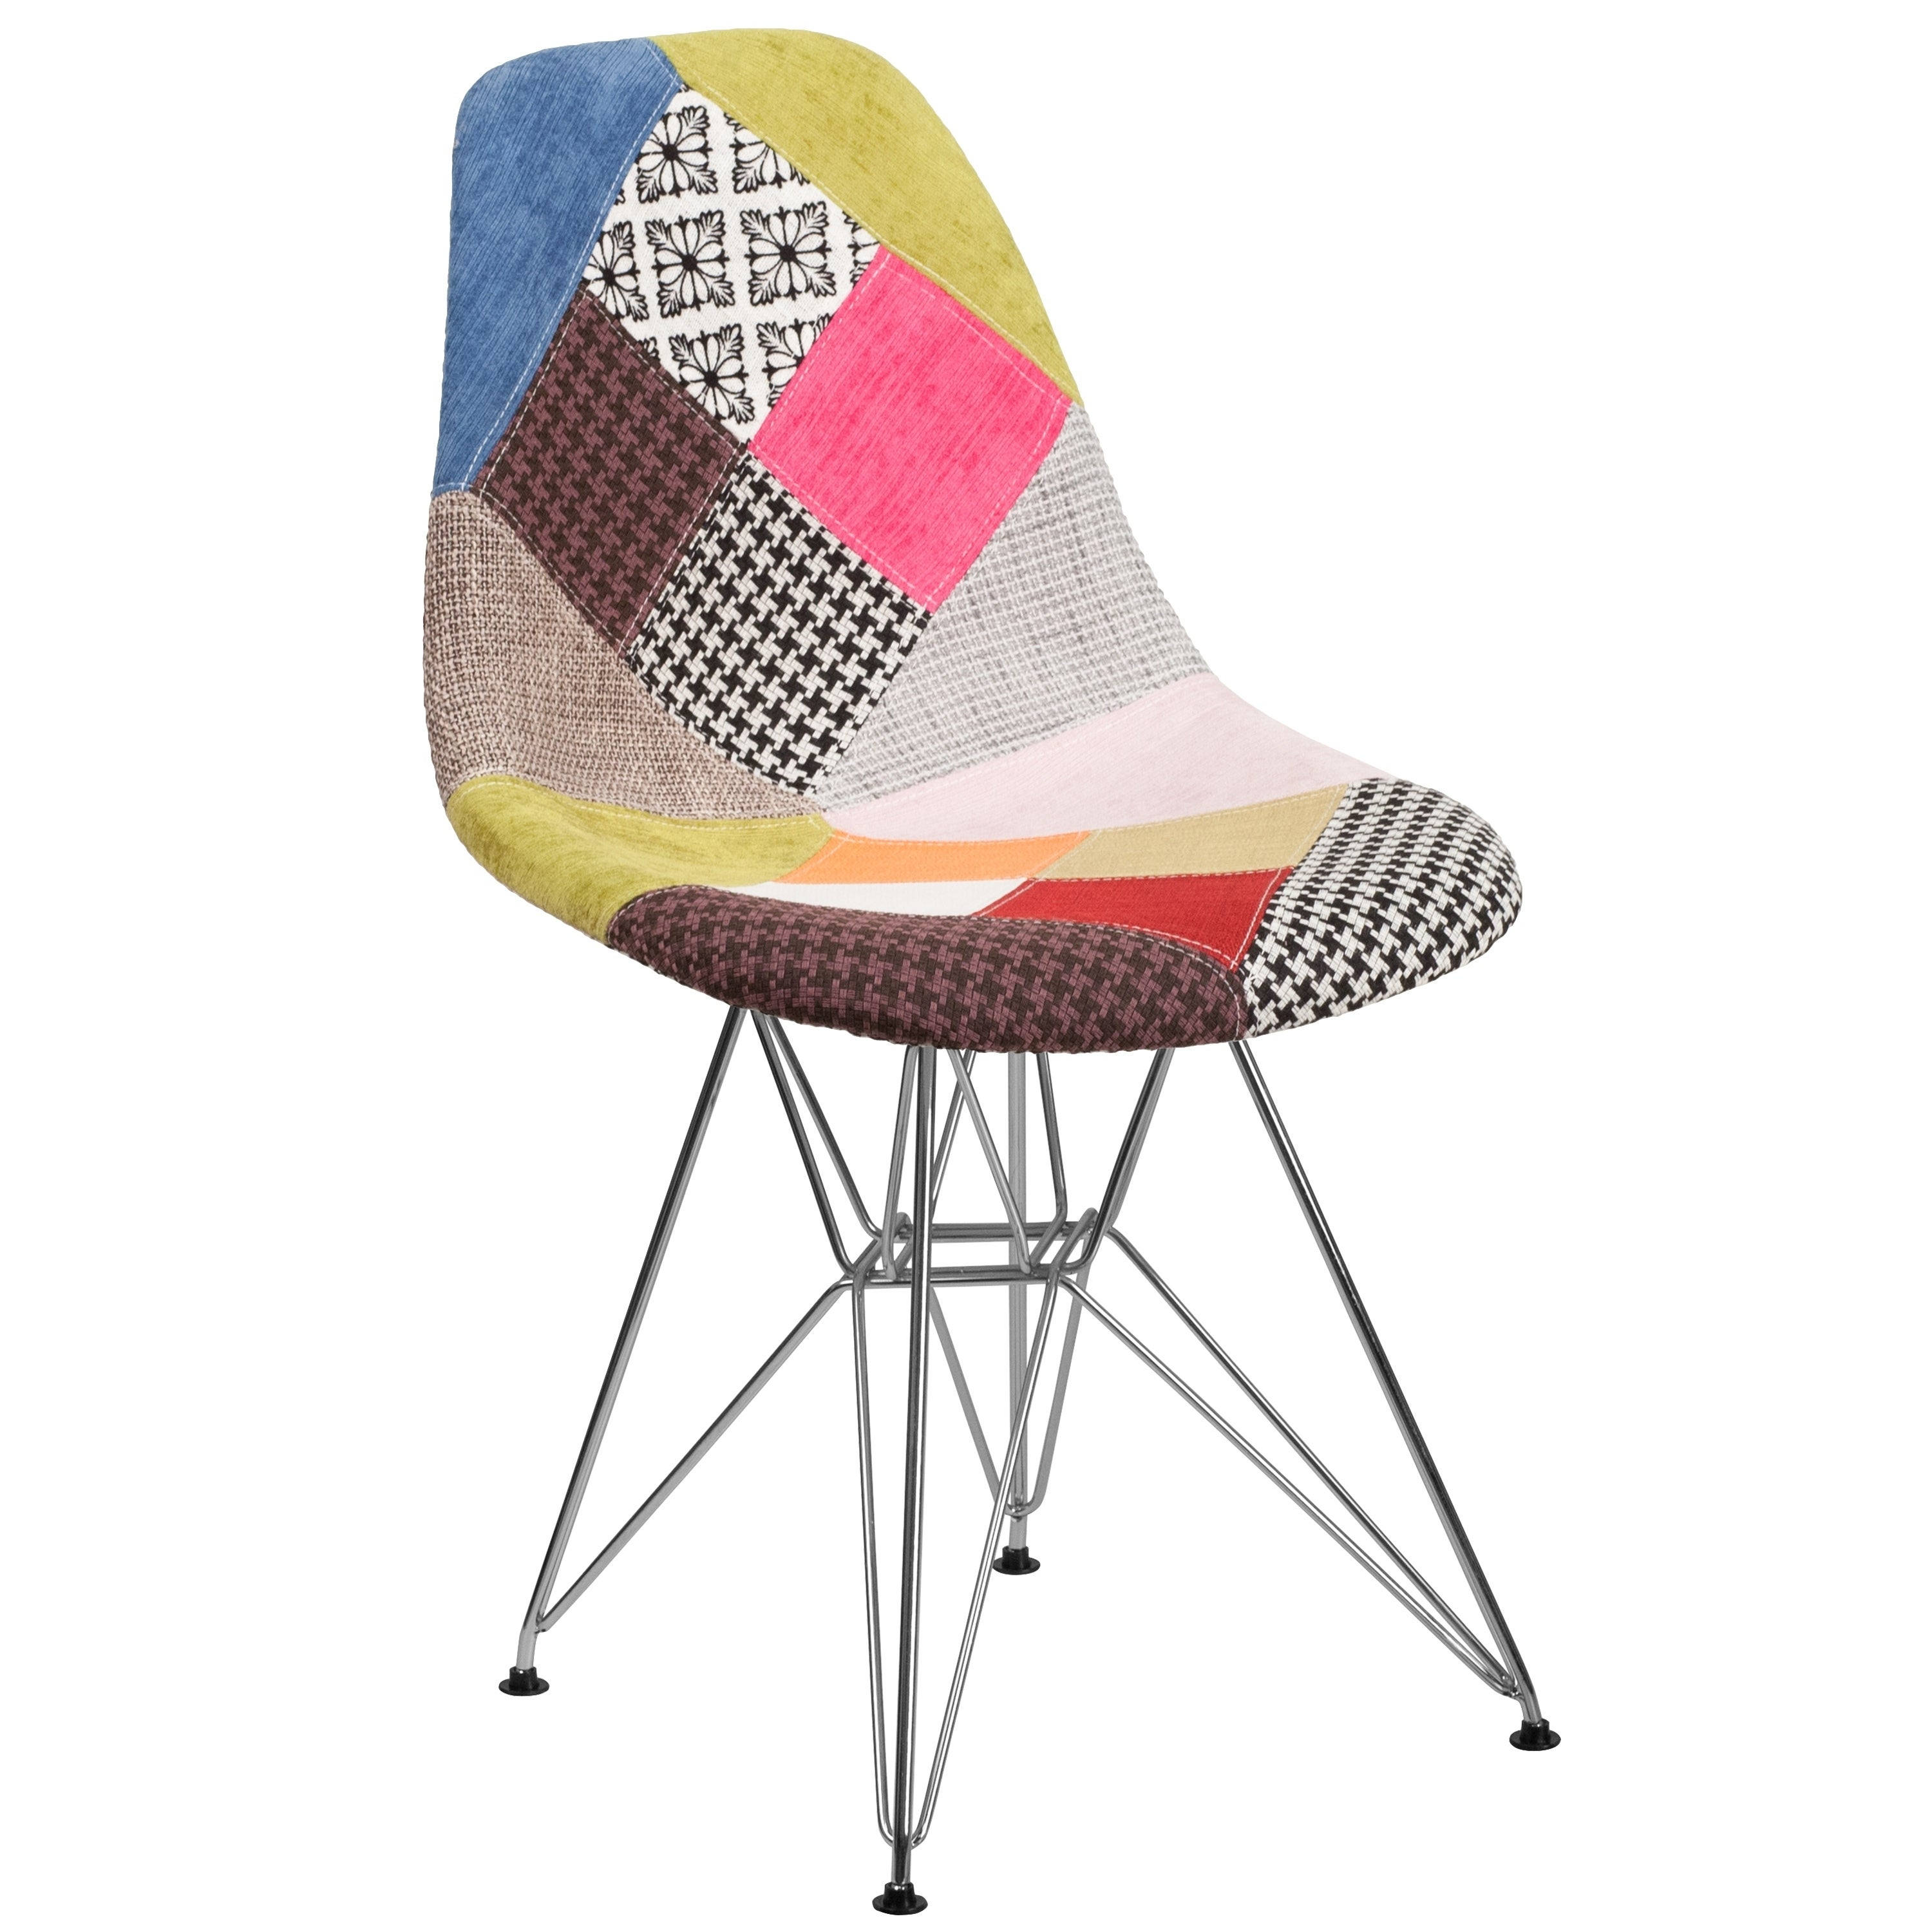 Shop modern mid century multi color patchwork upholstered chair with artistic chrome legs free shipping today overstock com 21450148